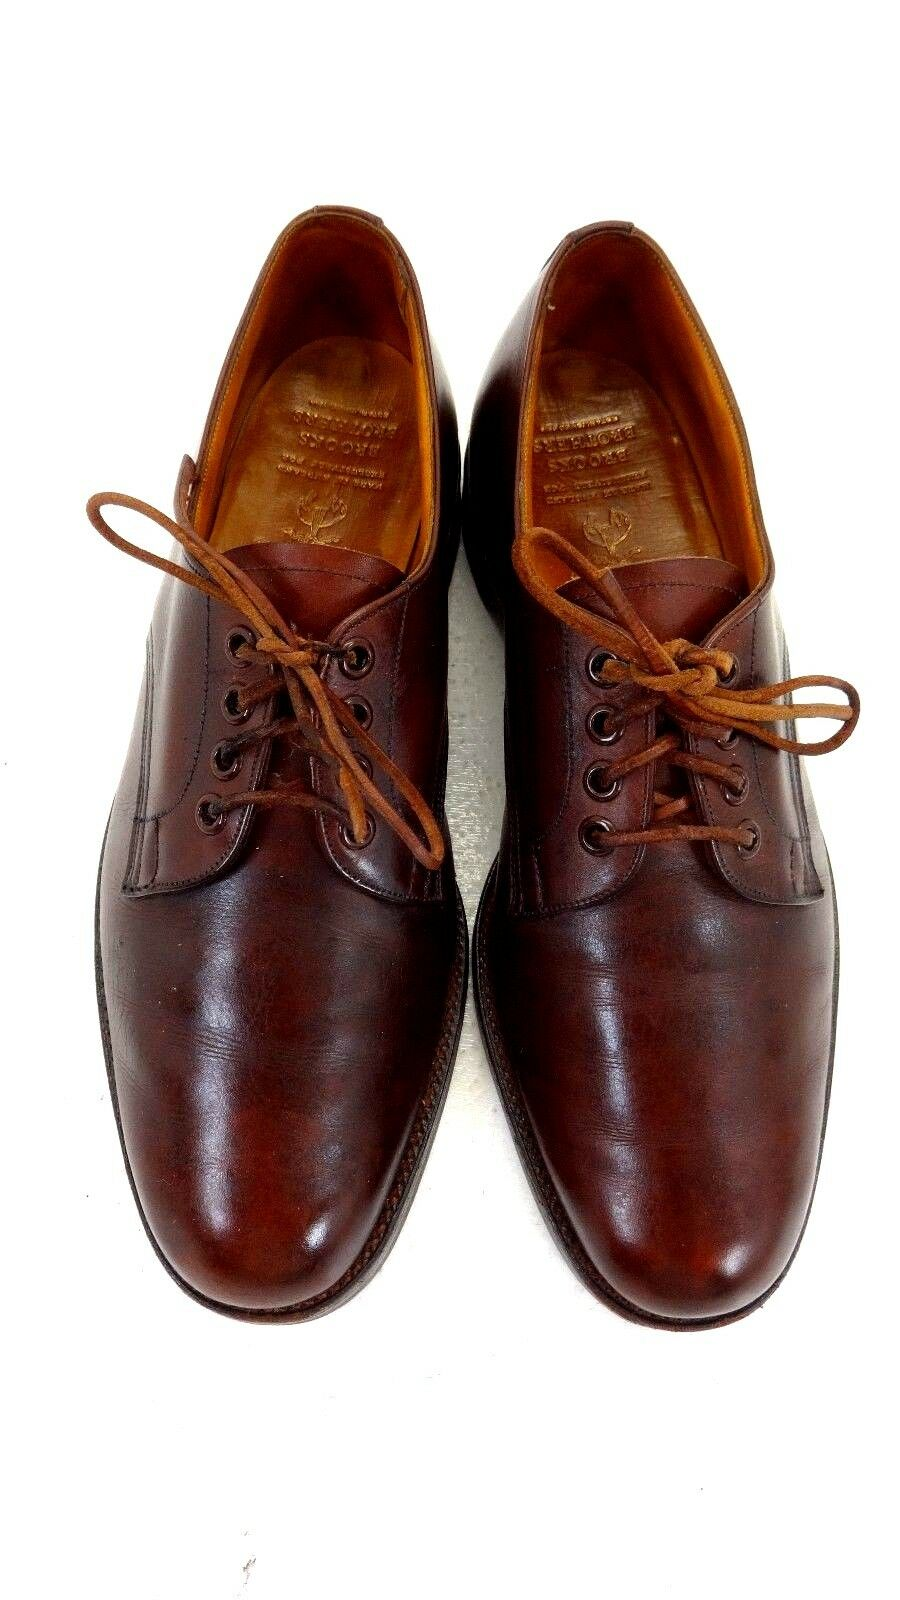 BROOKS BredHERS ENGLISH MENS BROWN LEATHER LACE UP OXFORDS SIZE 8.5 B